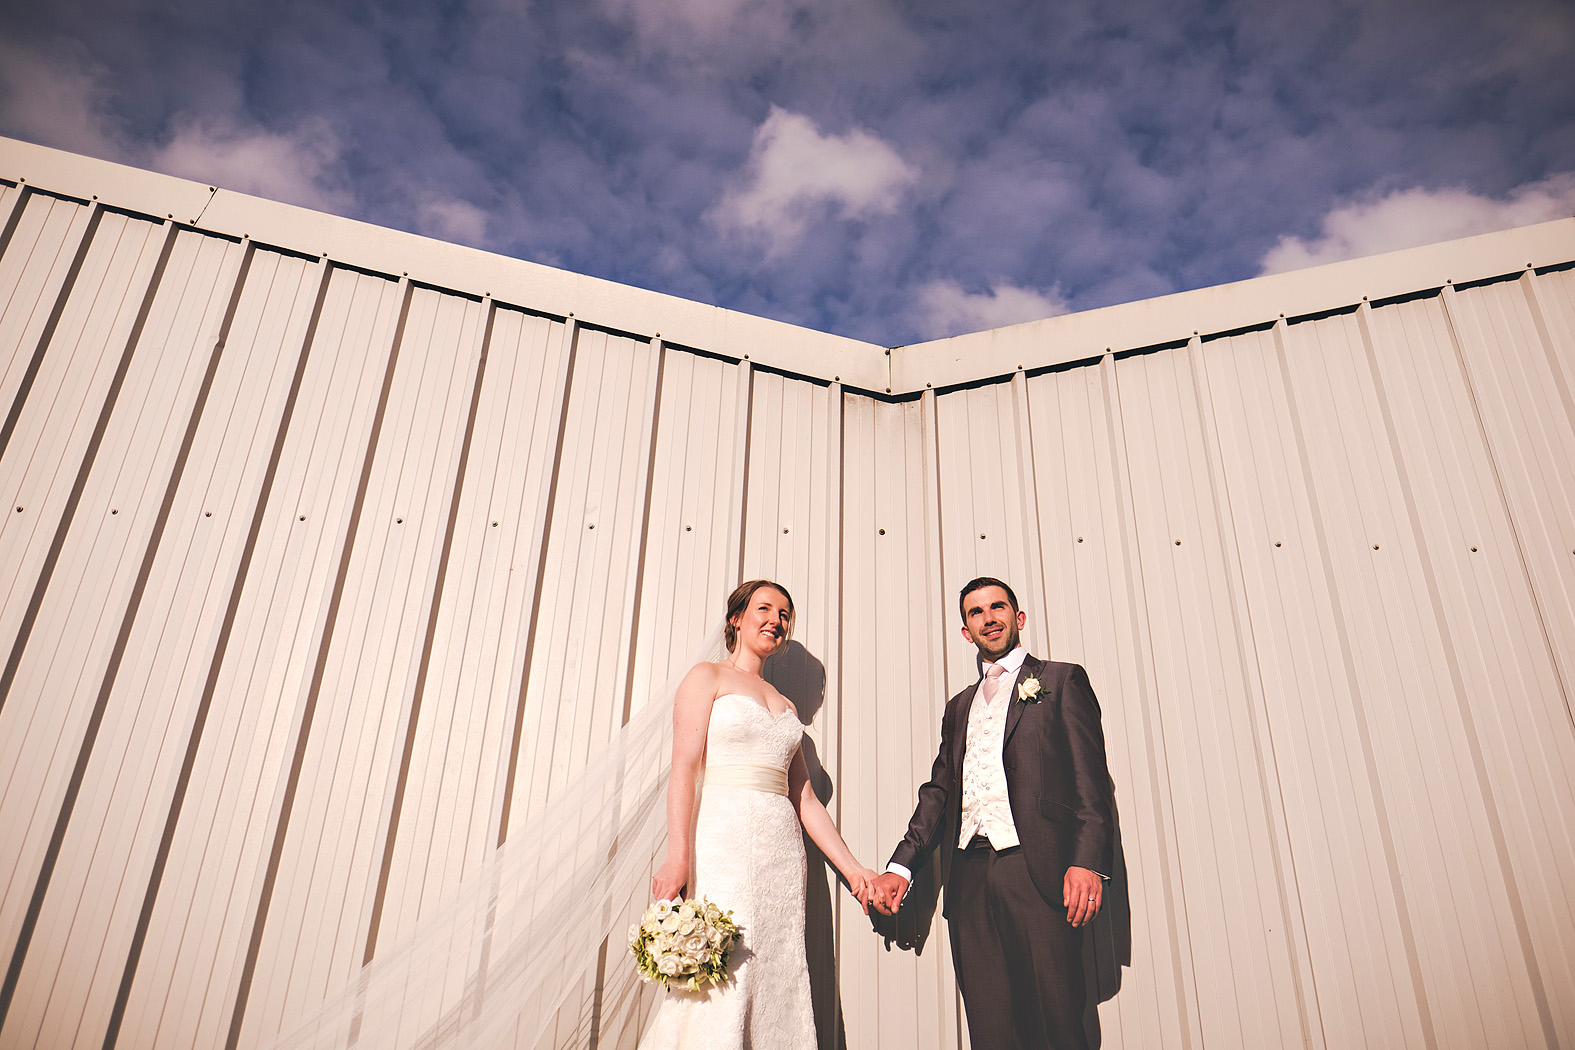 Sarah and James at Tithe Barn